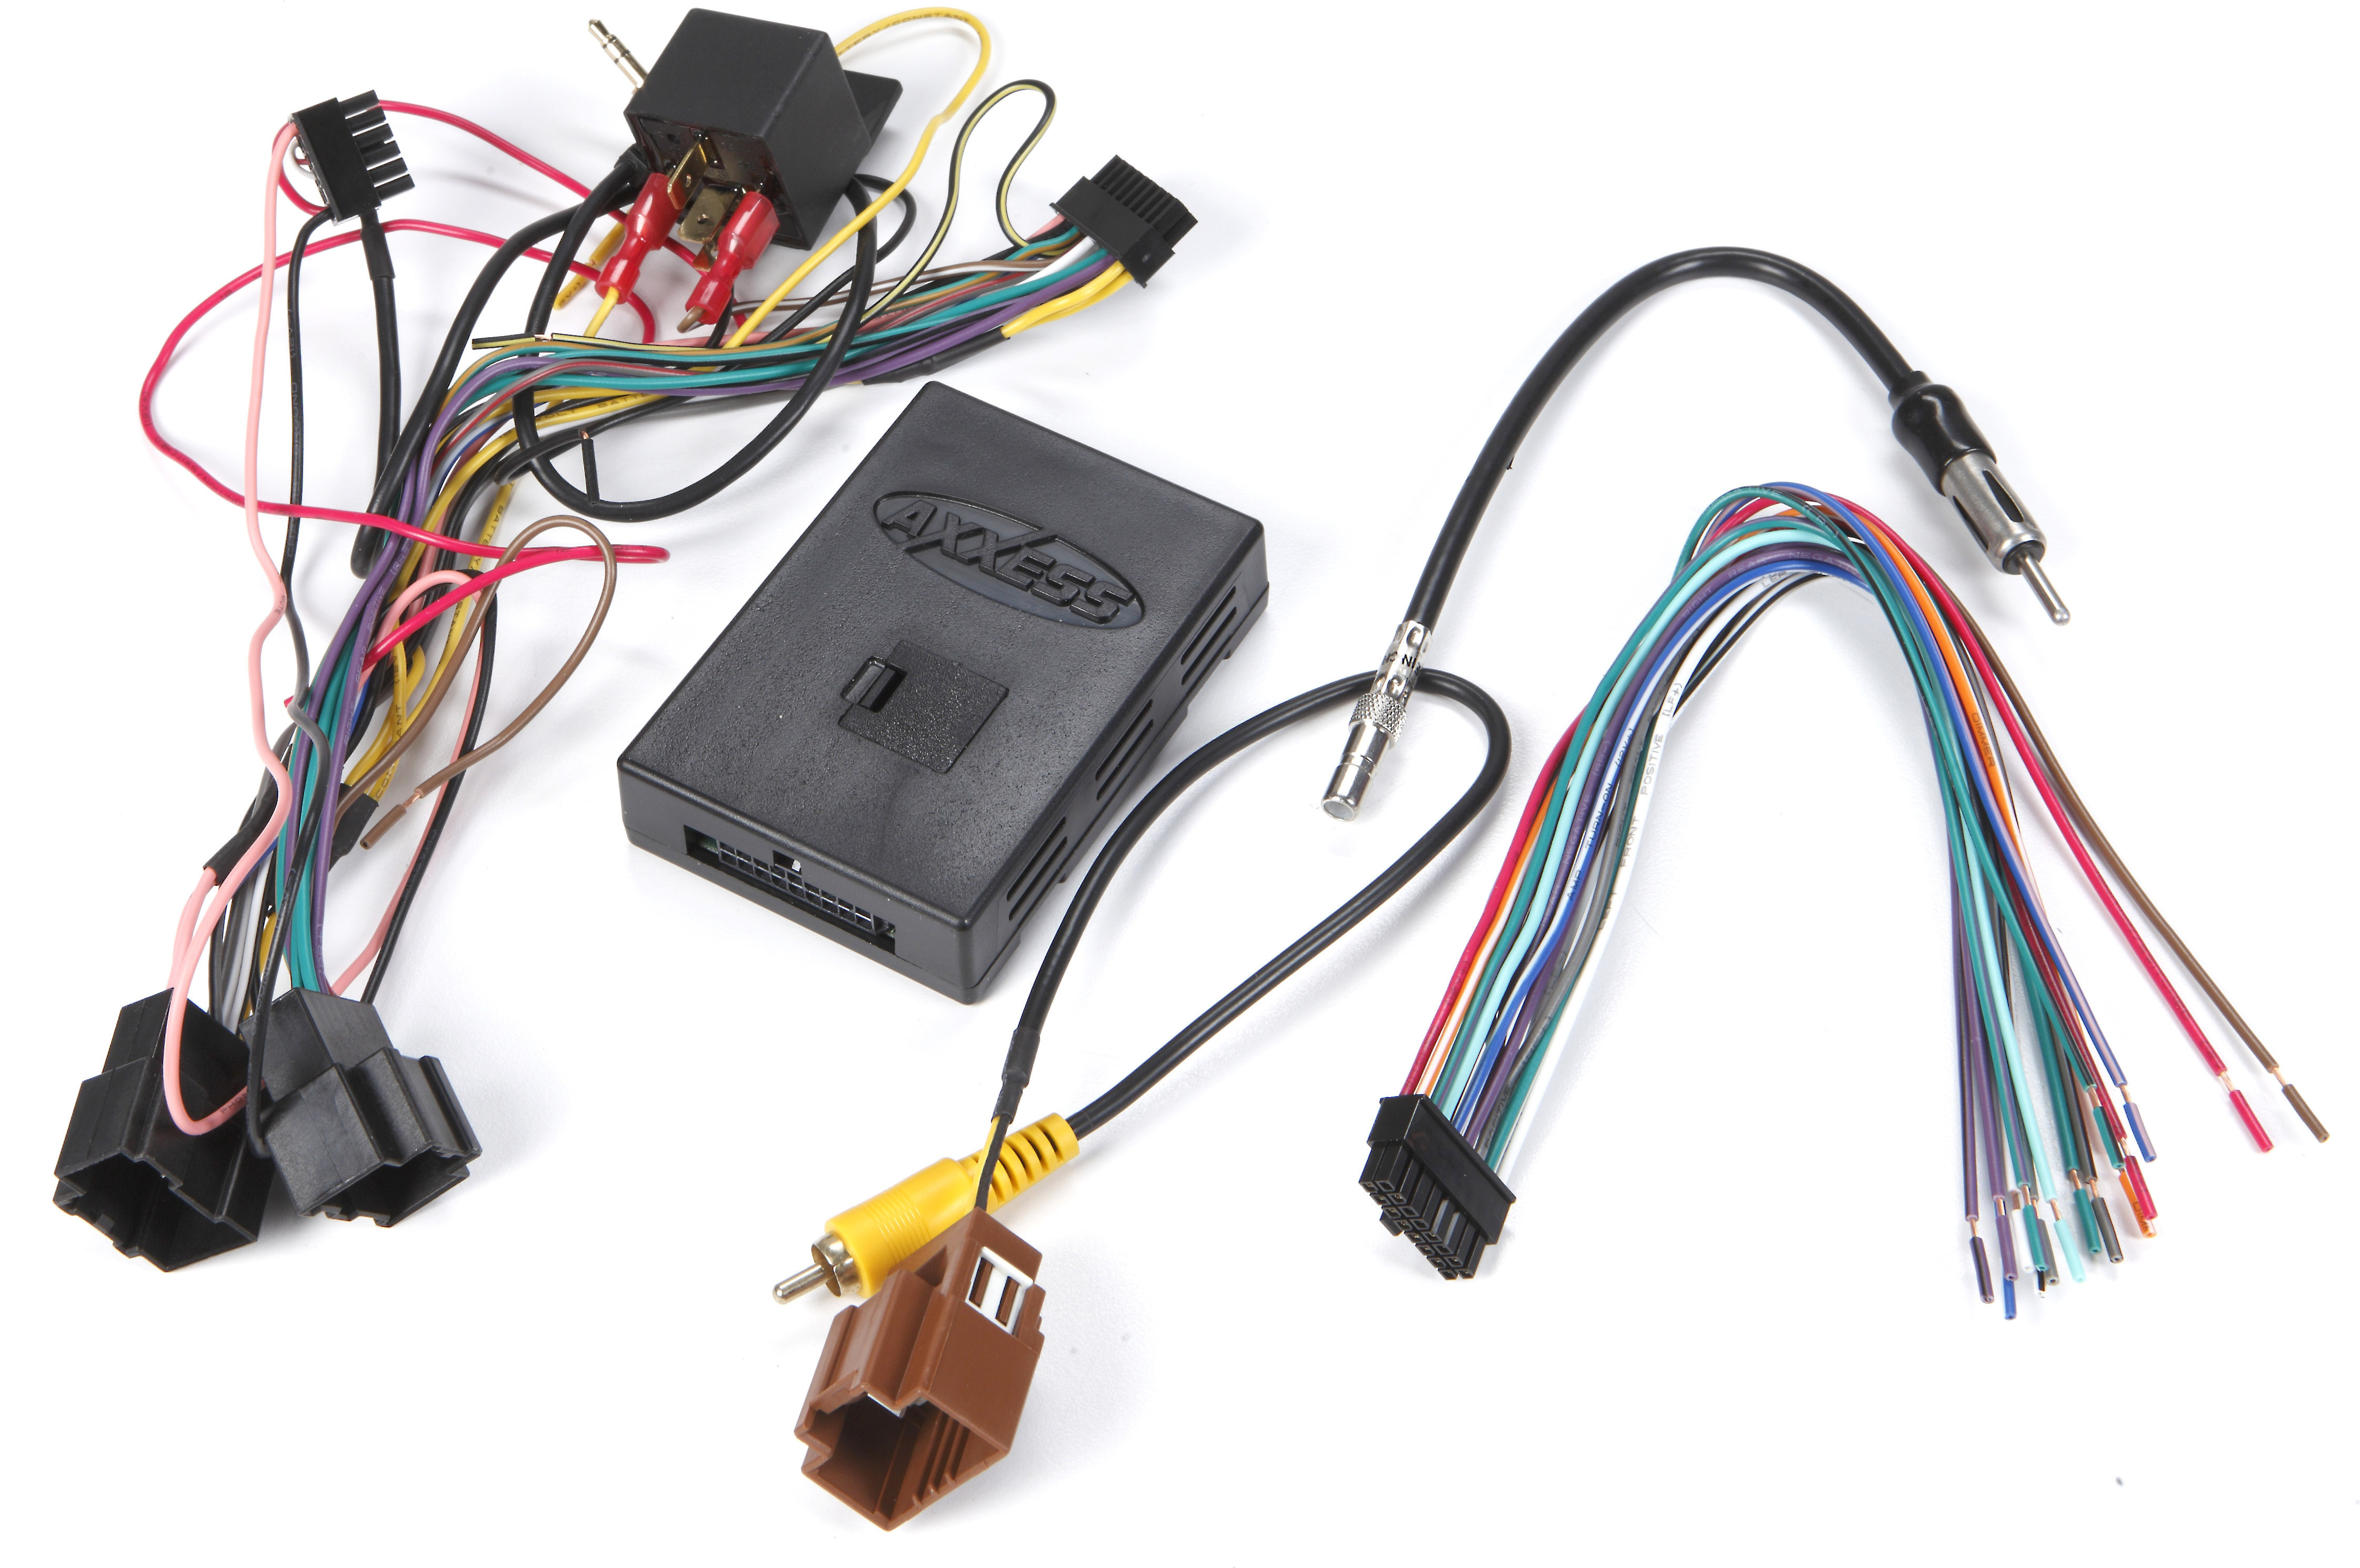 axxess gmos-lan-02 wiring interface connect a new car stereo and retain  factory amp, onstar, bluetooth, backup cam, and warning chimes in select  2006-up gm